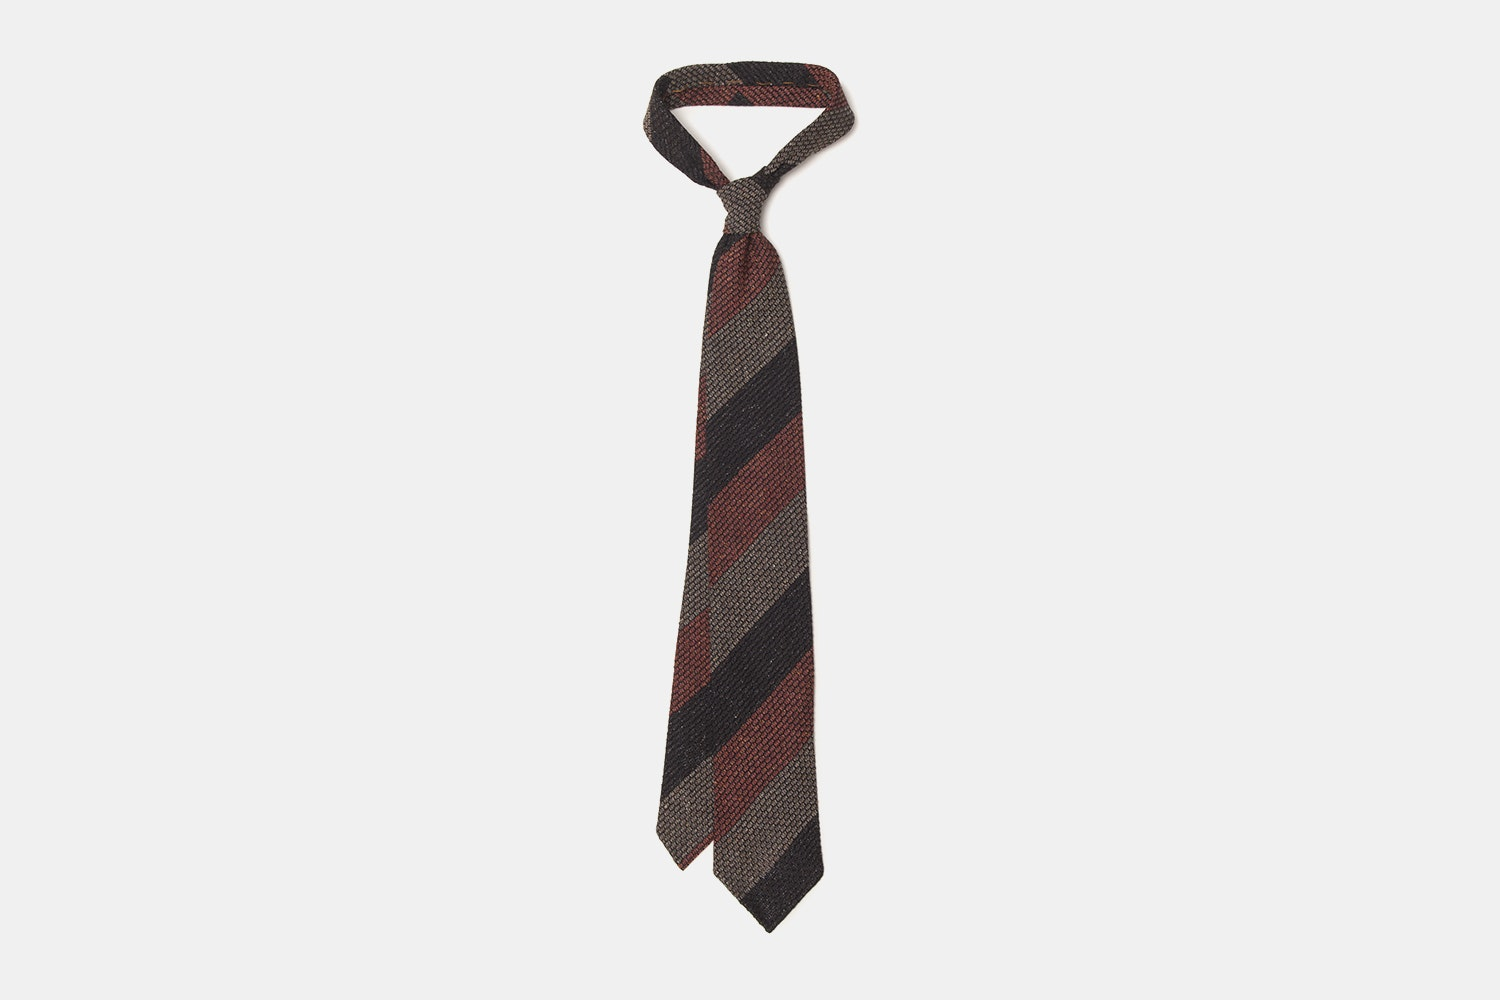 Block Stripe Grenadine with Mixed Red, Brown and Dark Tan Stripes